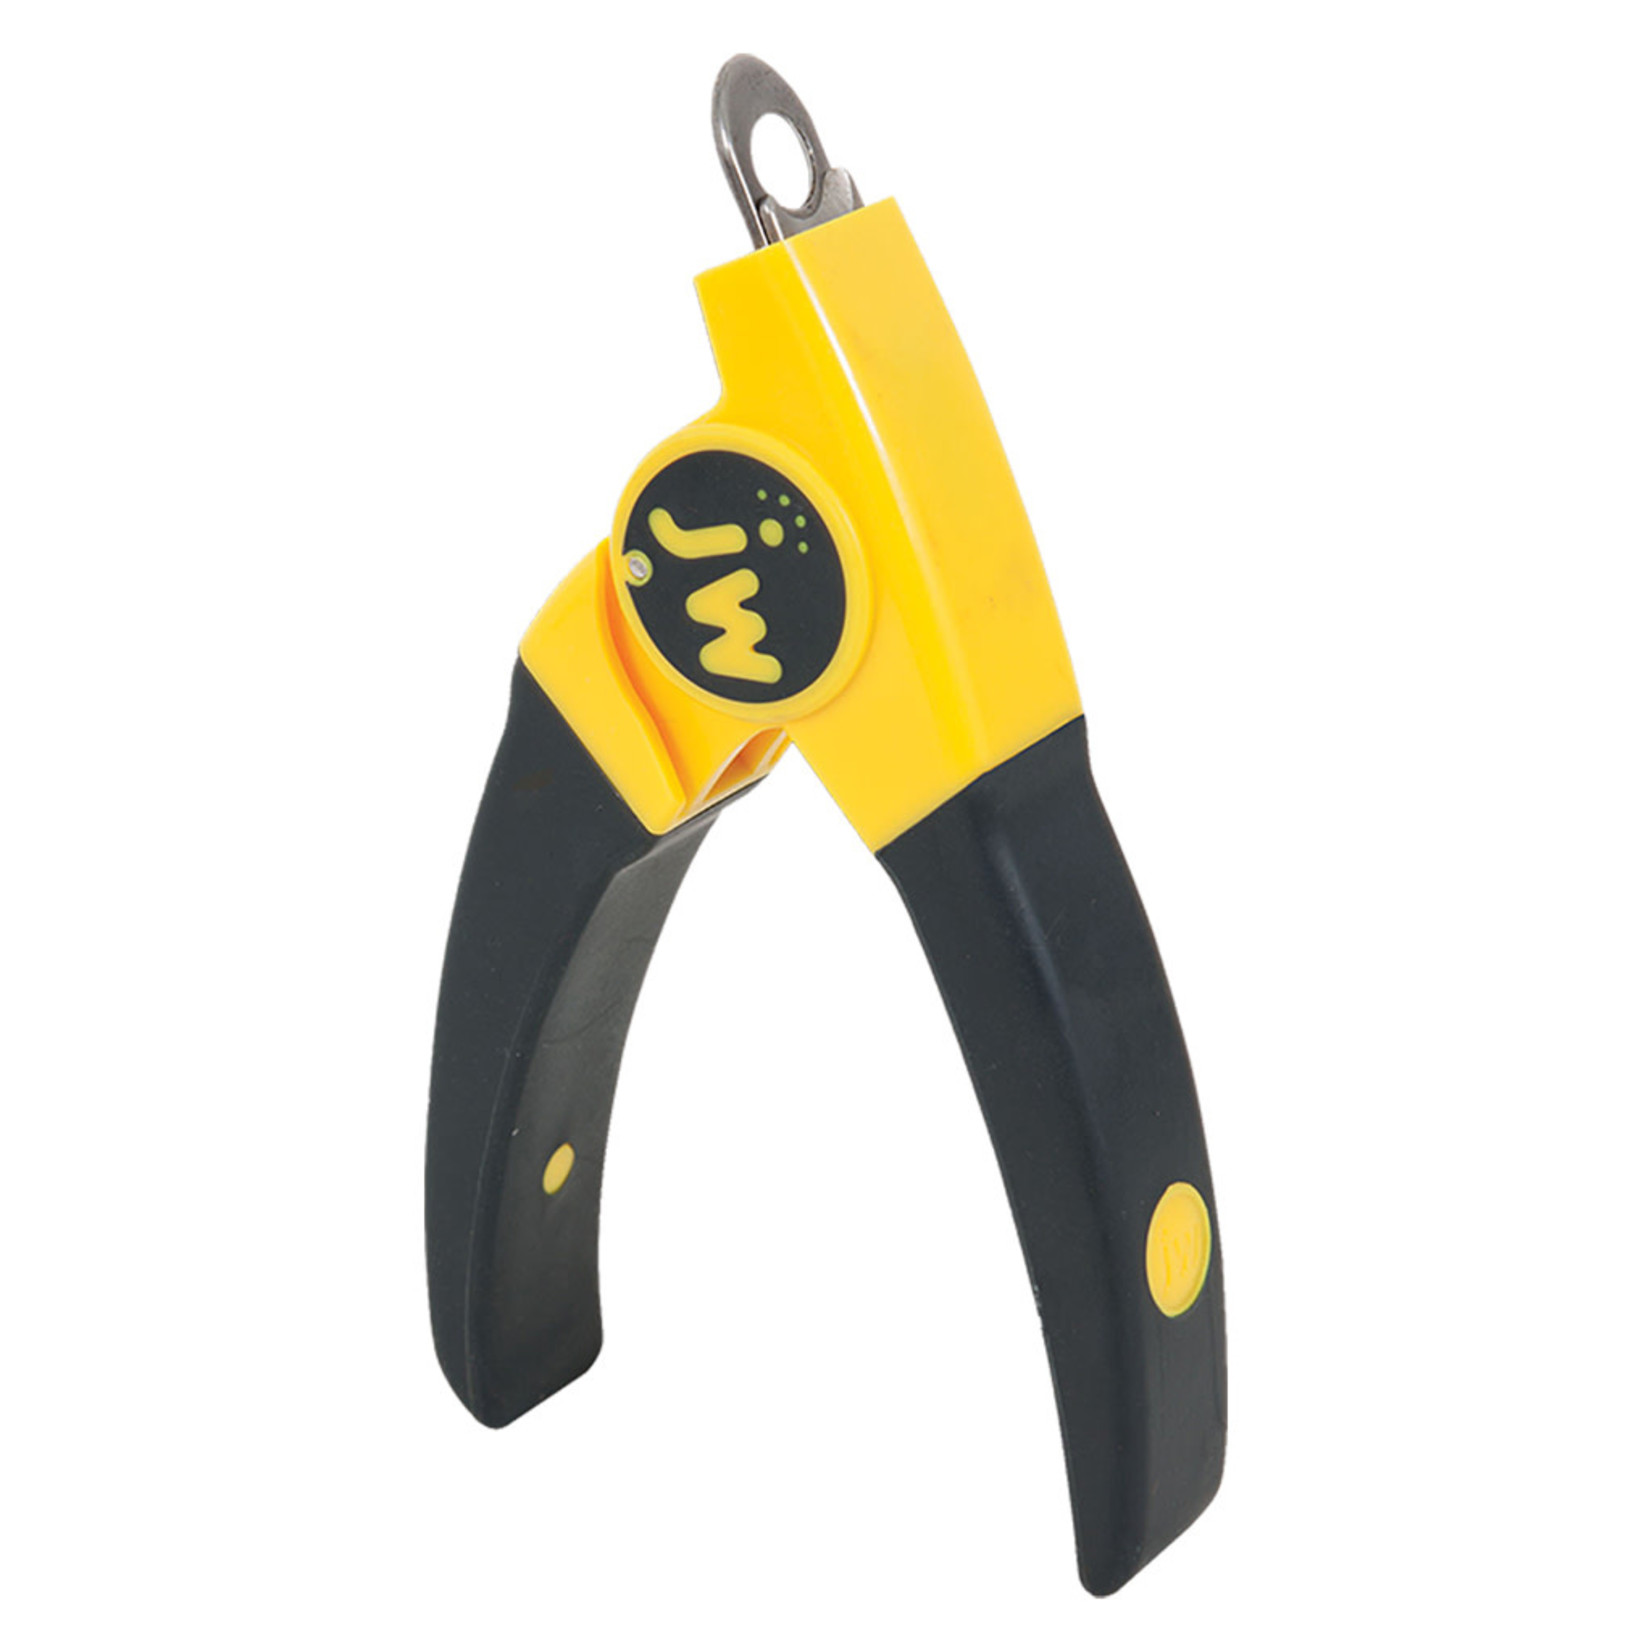 JW JW Gripsoft Deluxe Nail Trimmer Dogs